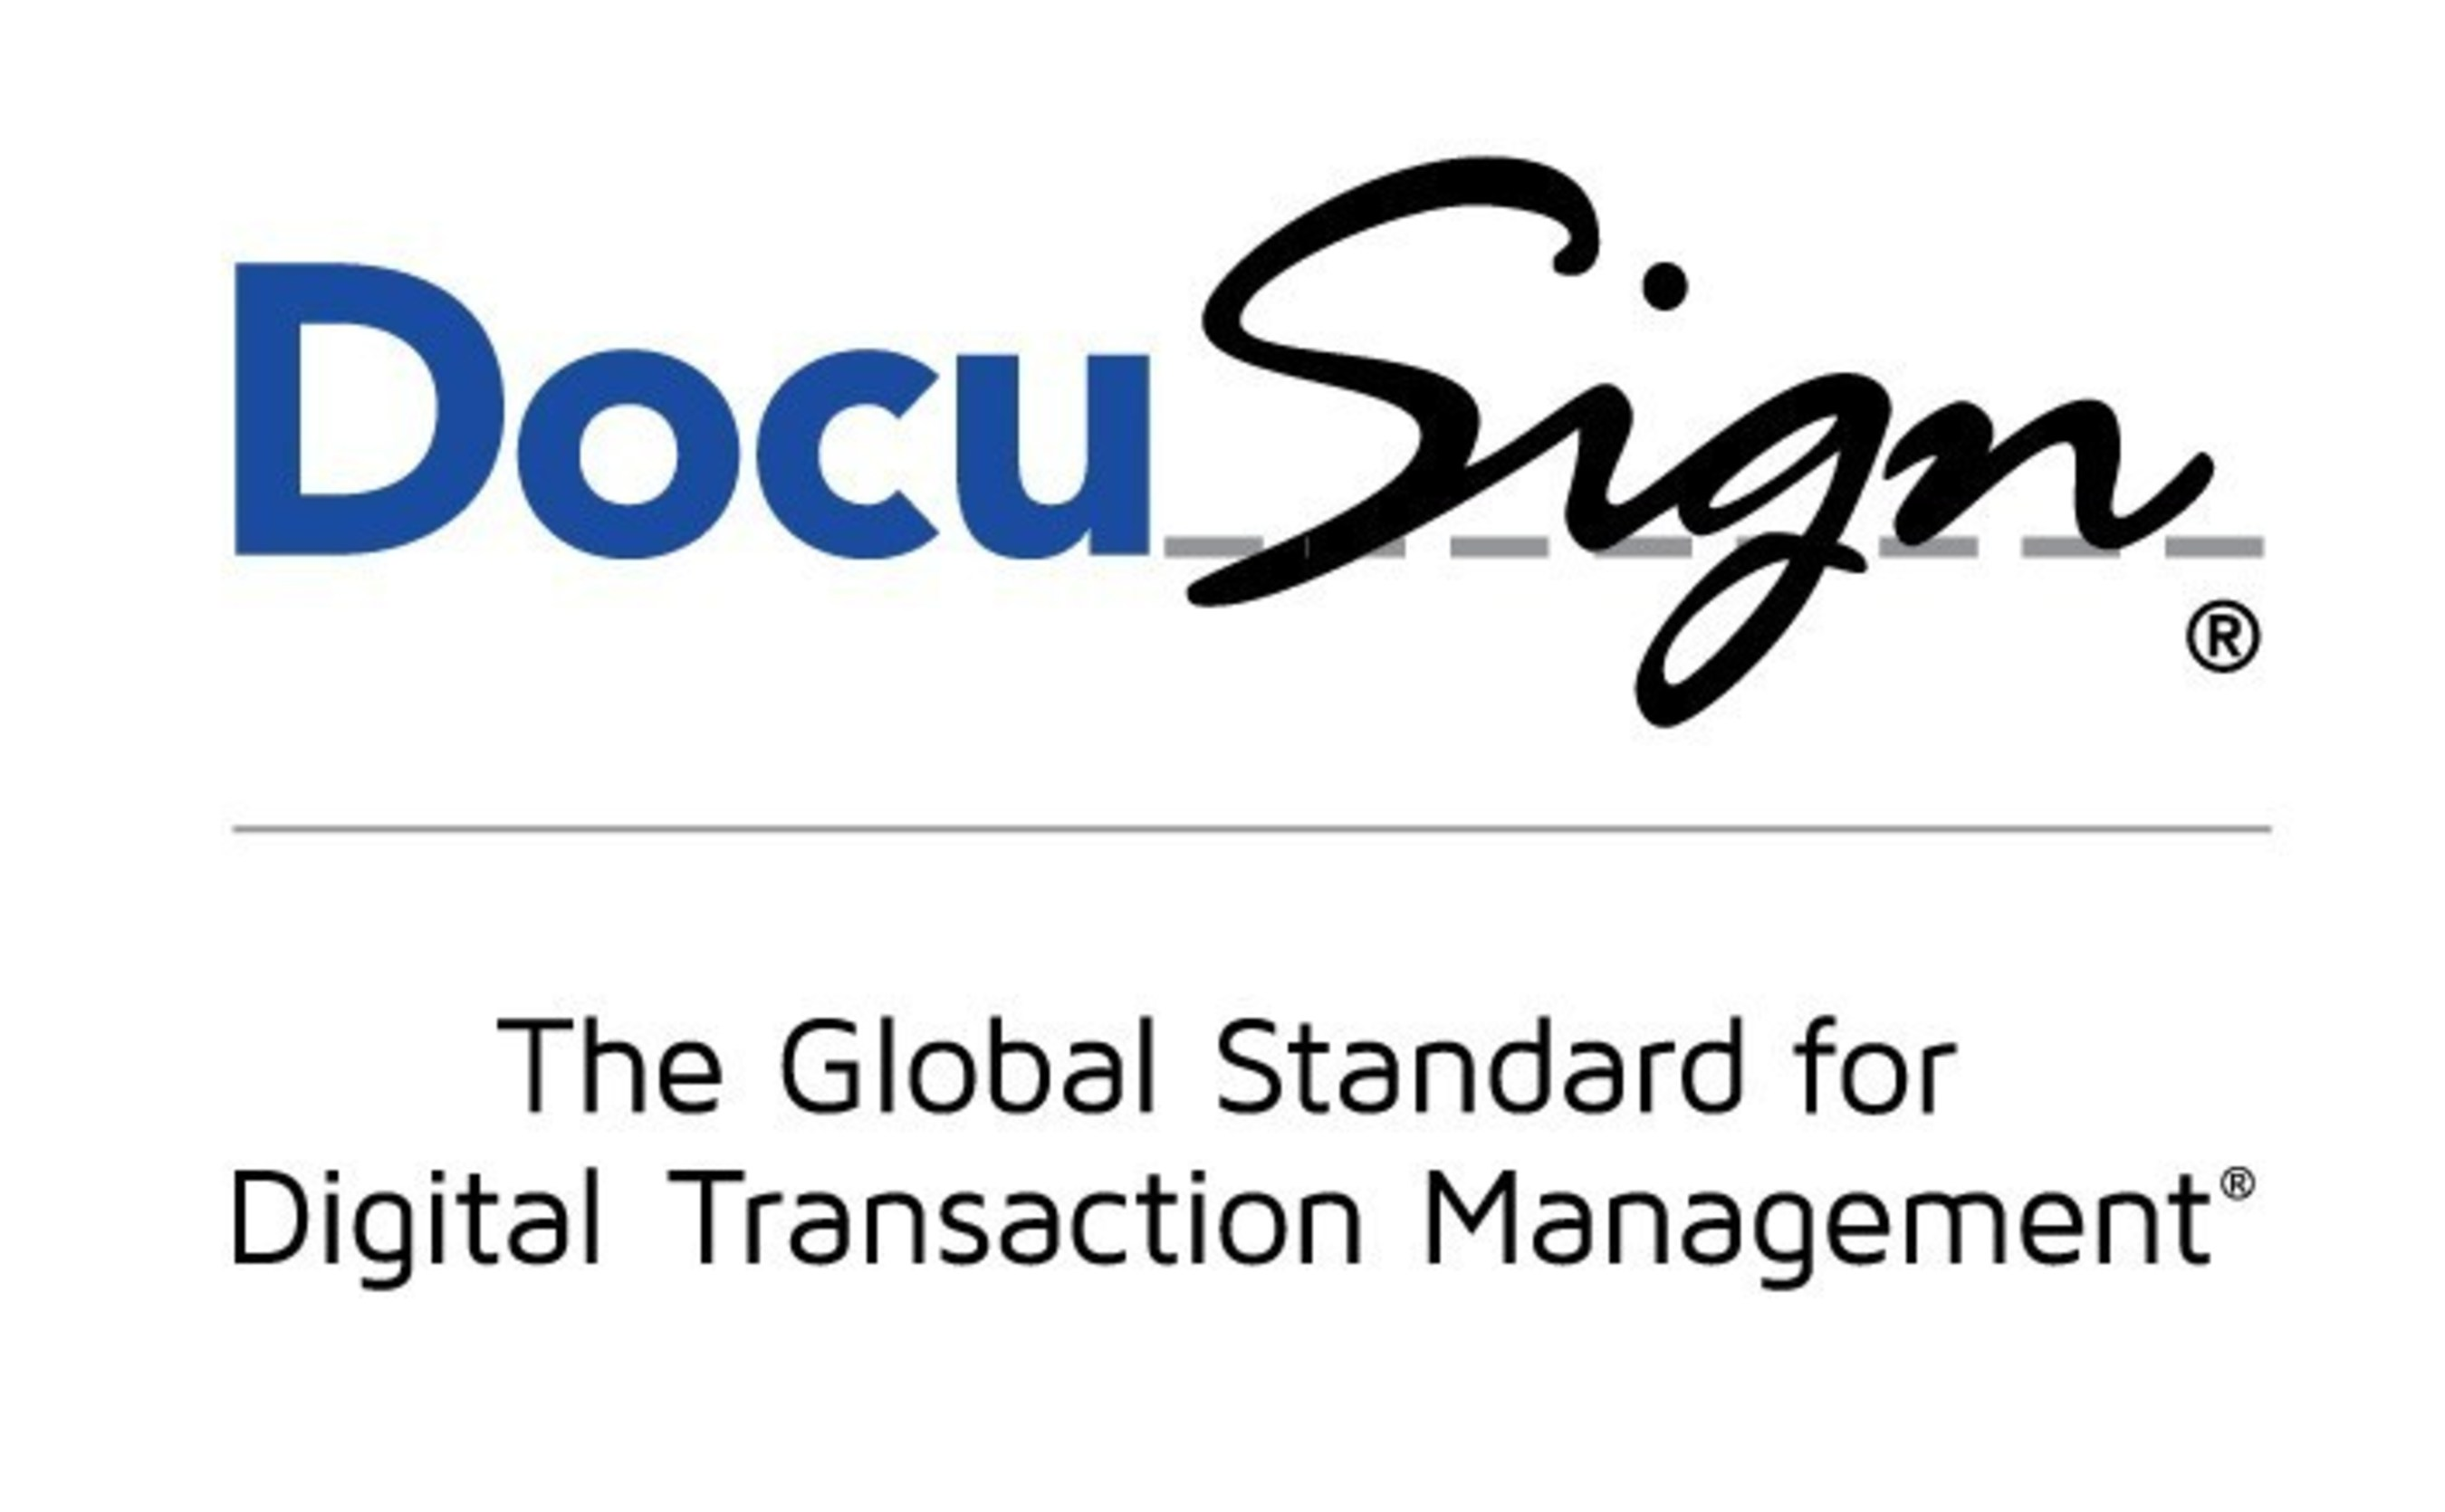 DocuSign Spring '15 Release Makes Industry-Leading Digital Transaction Management Even Easier